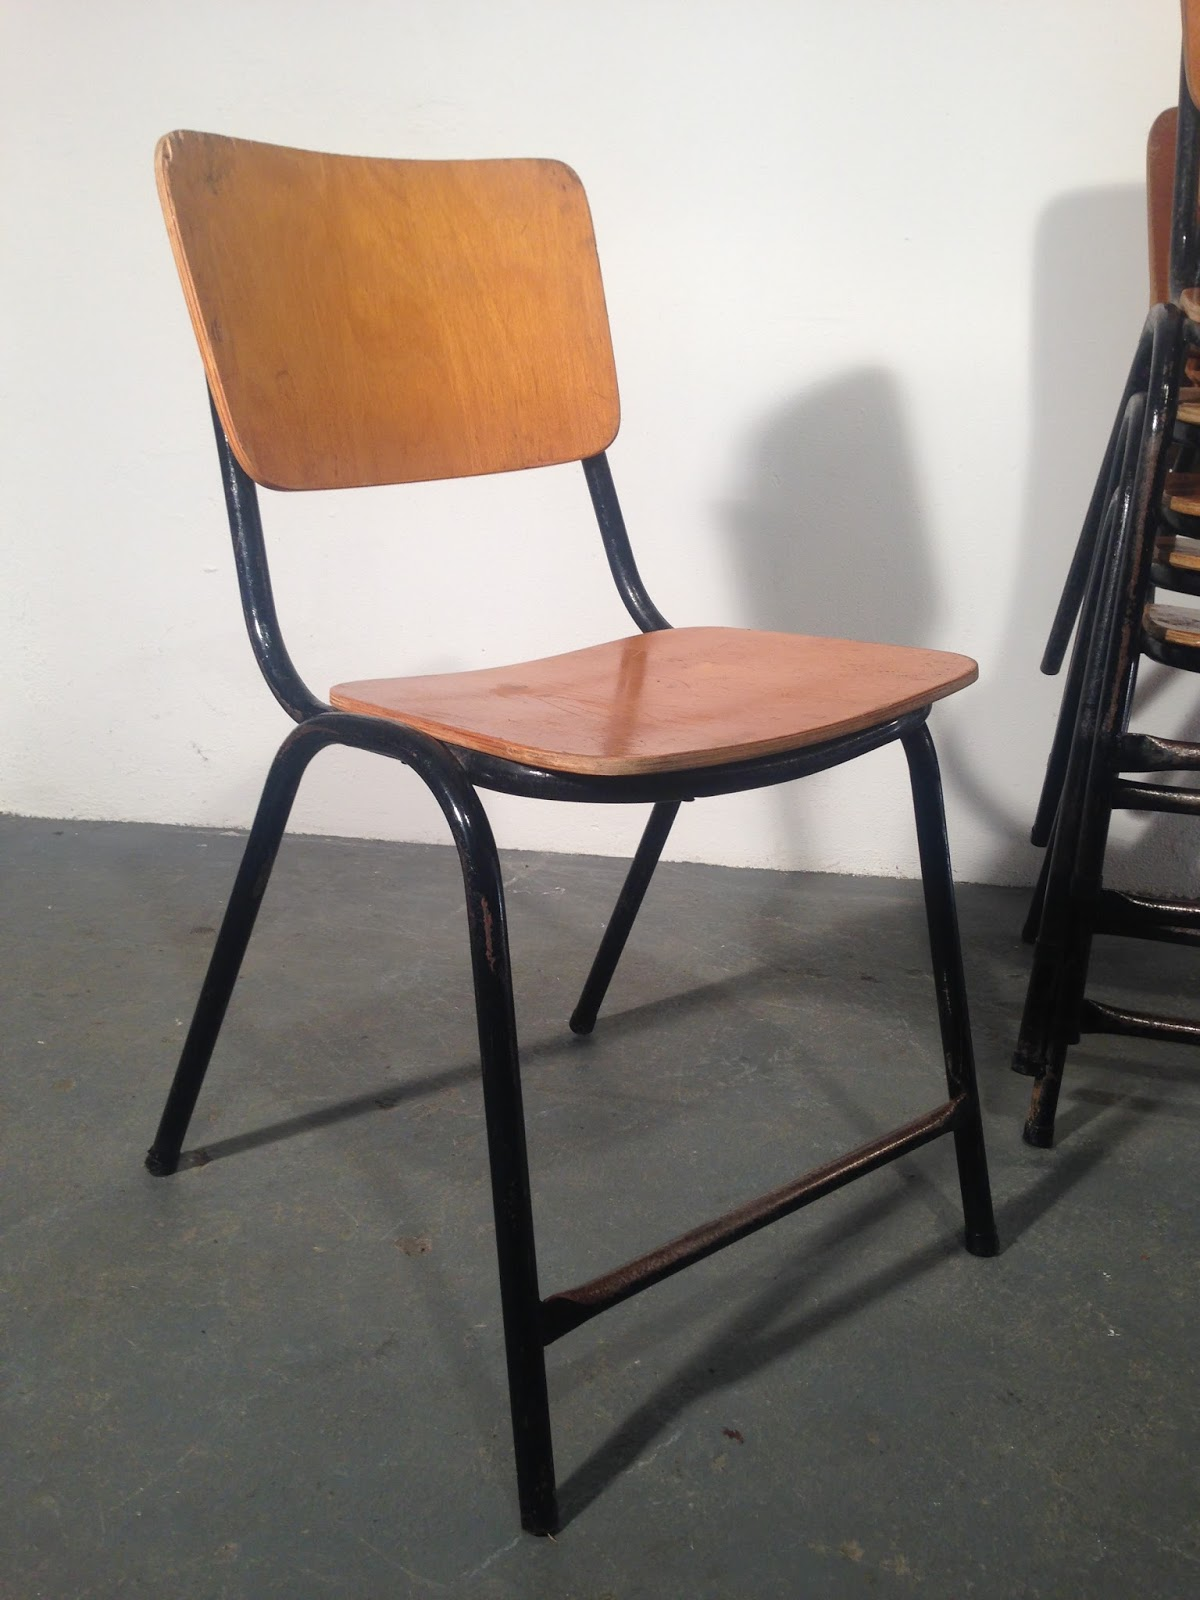 retro dining chairs ireland revolving chair meaning in urdu ocd vintage furniture stacking